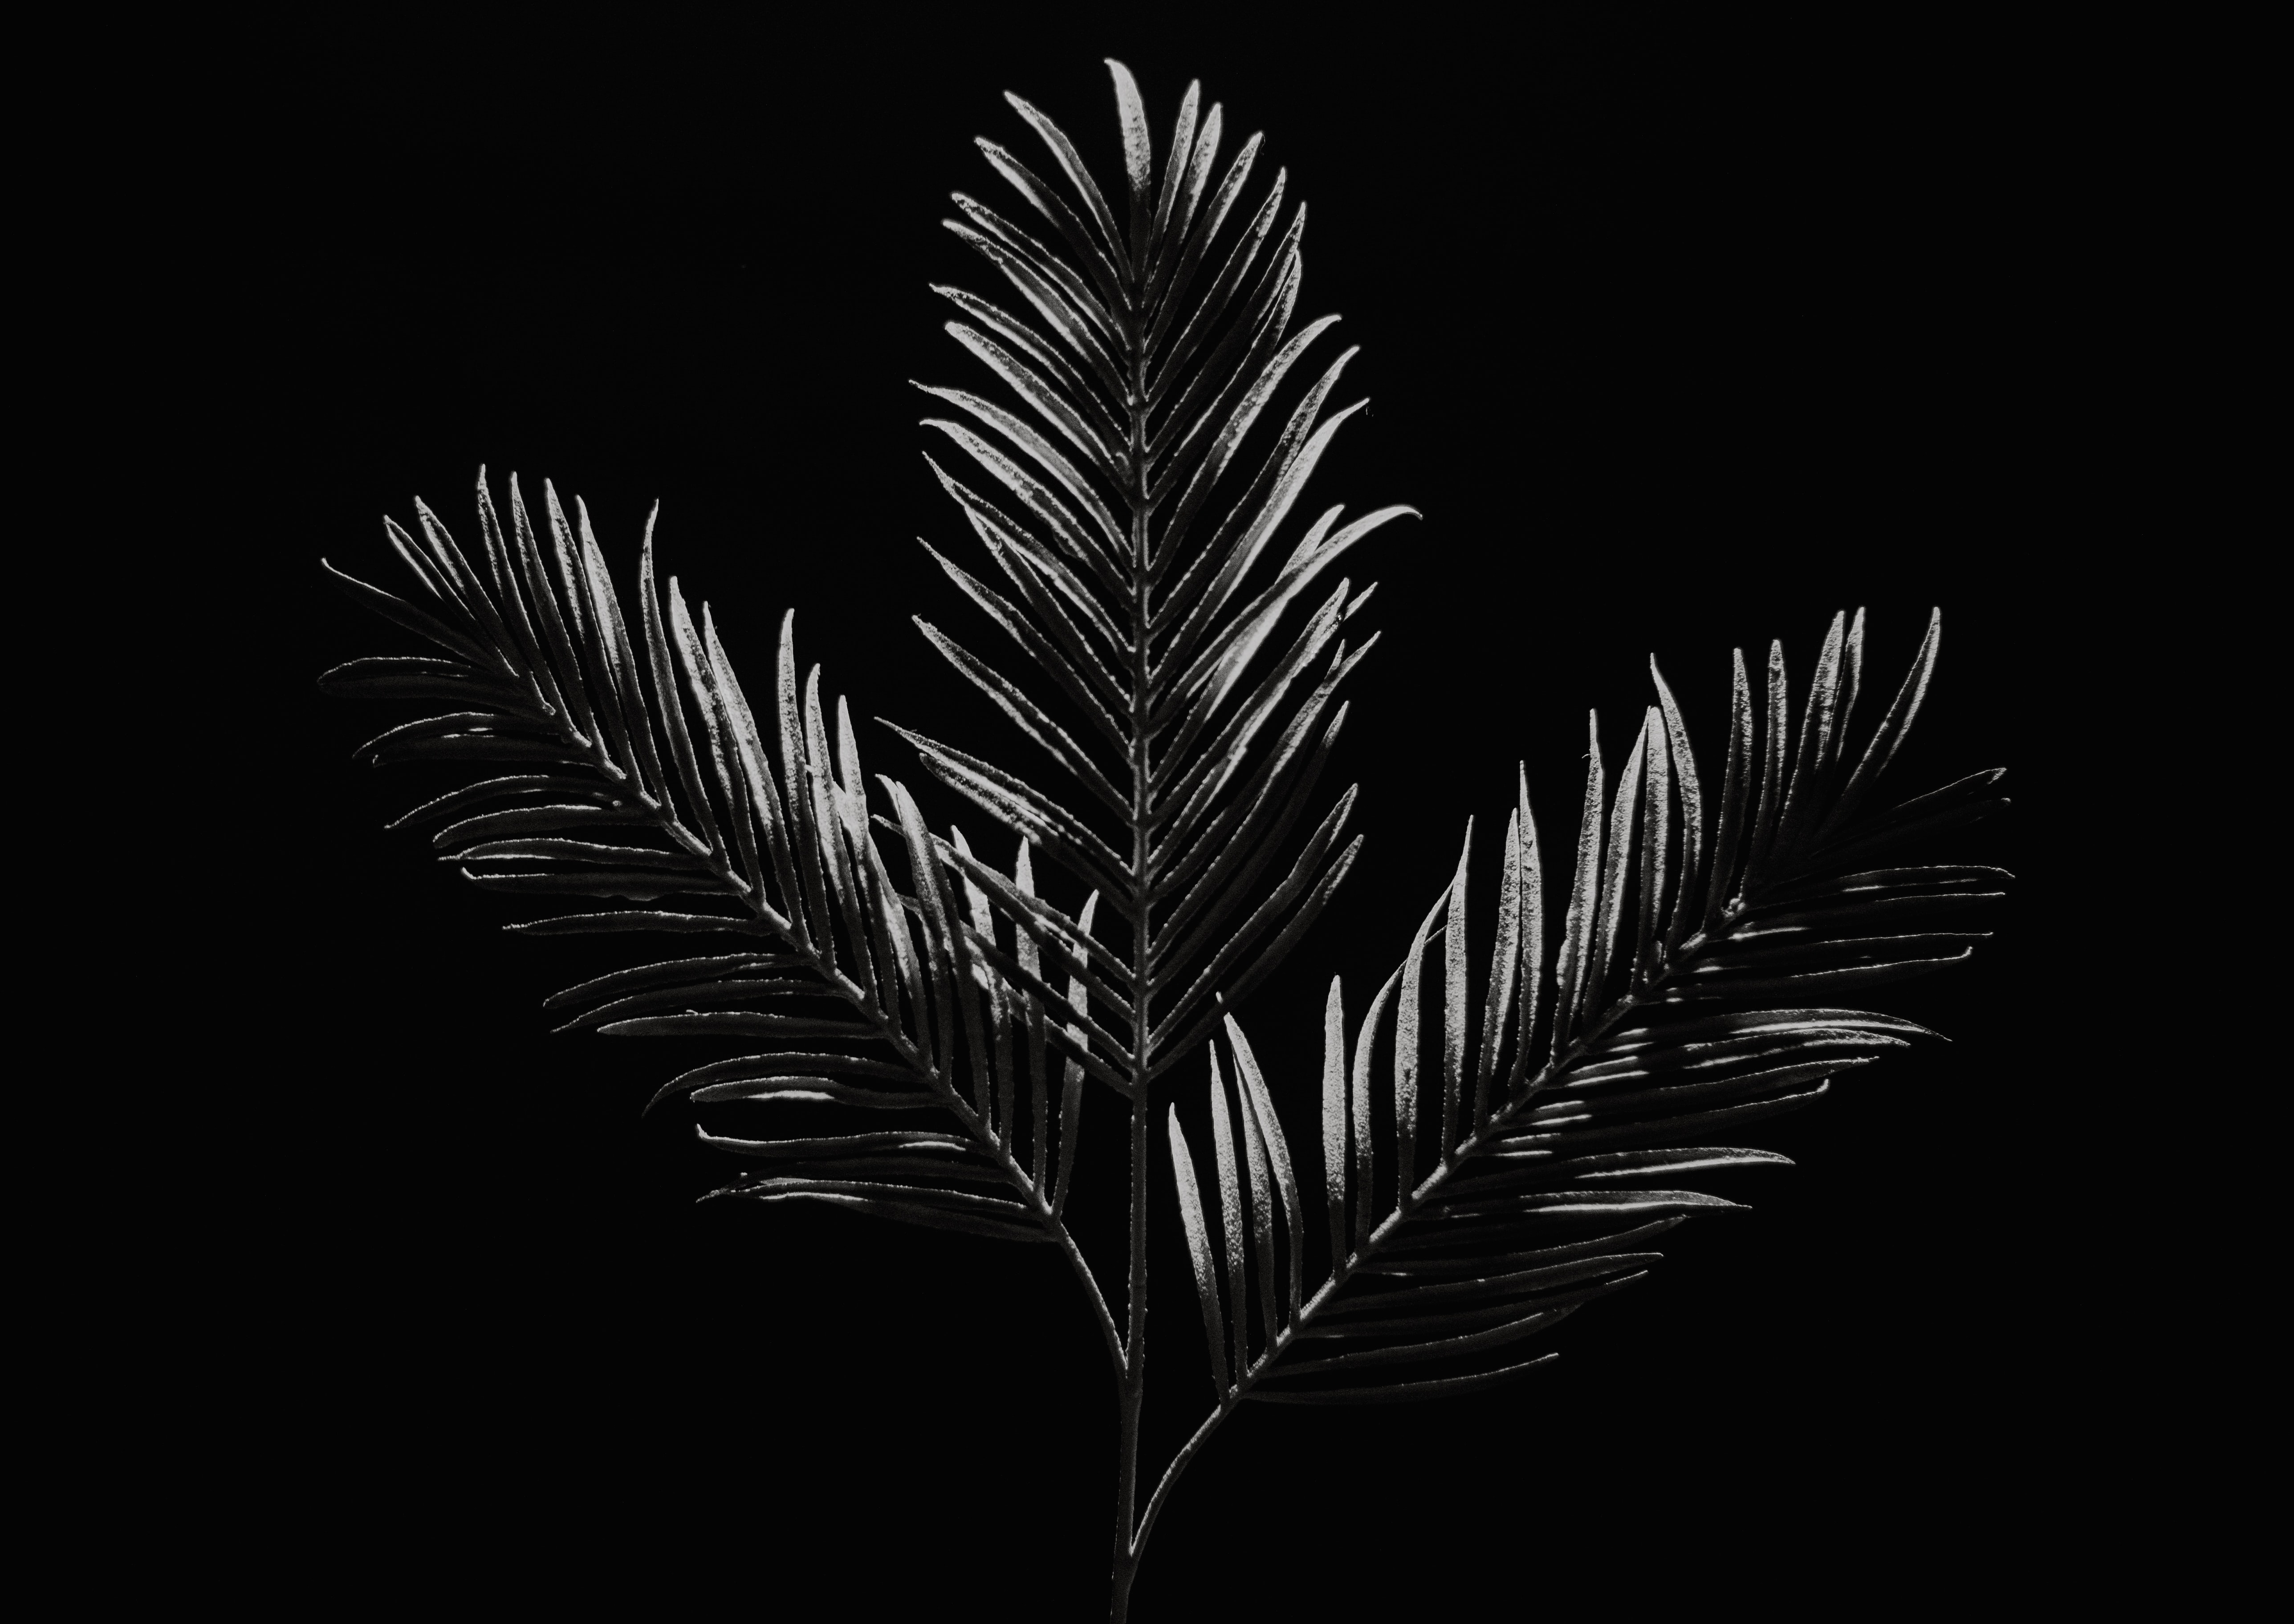 grayscale photo of palm tree